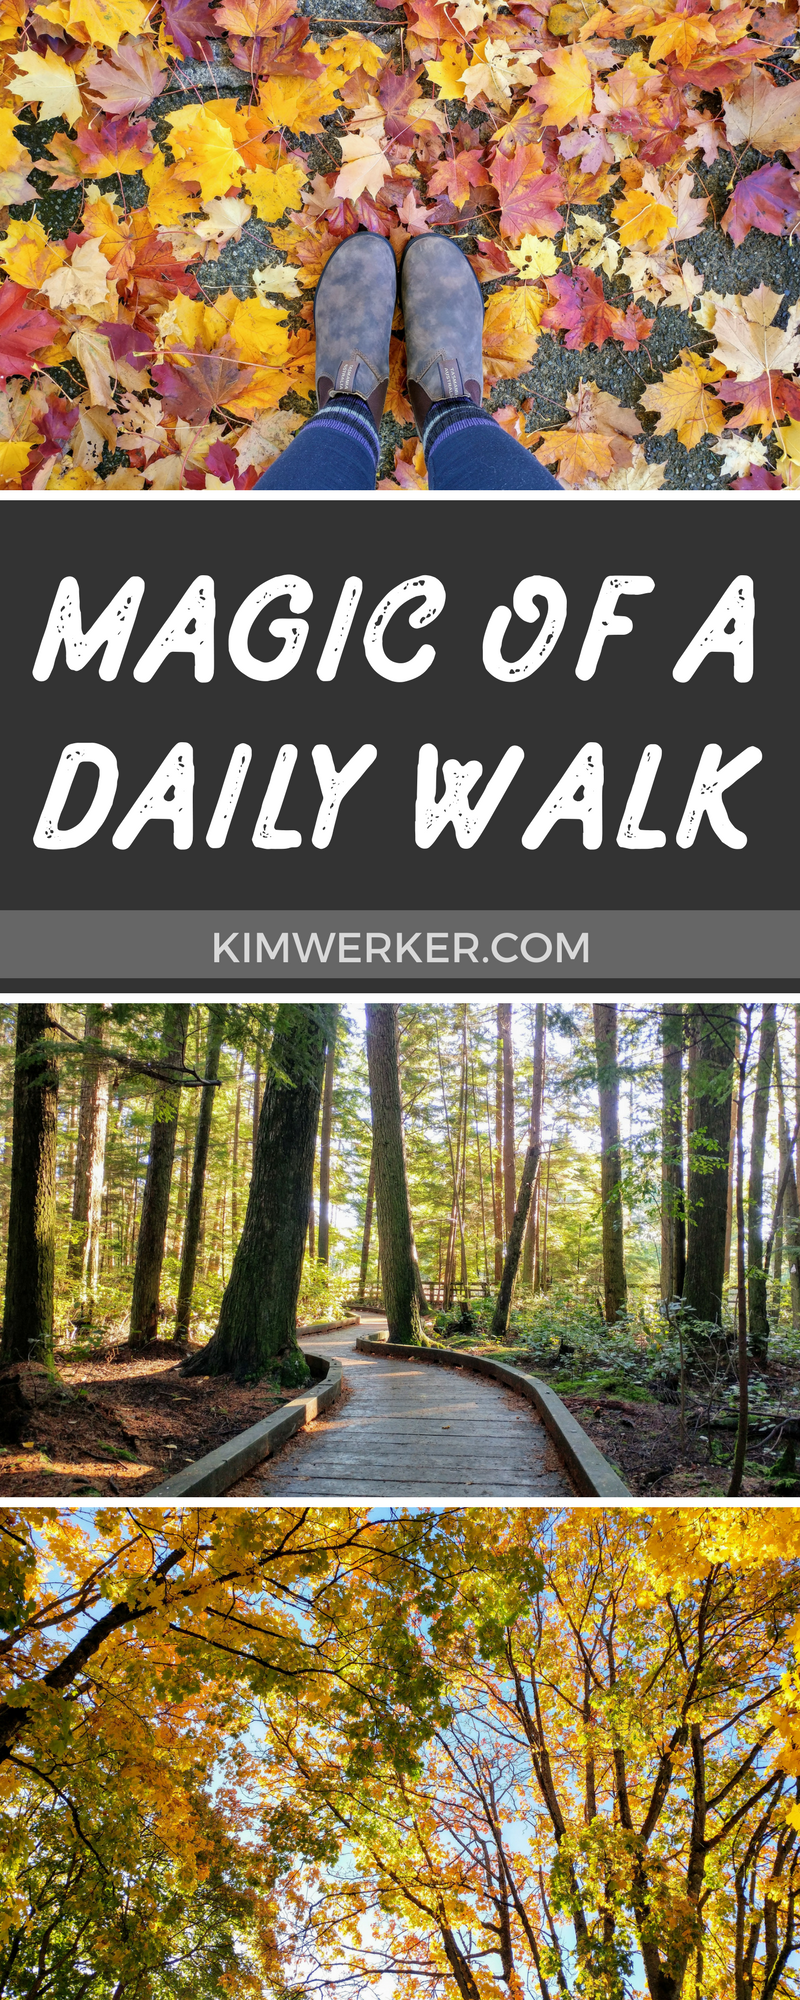 A Walk Every Day